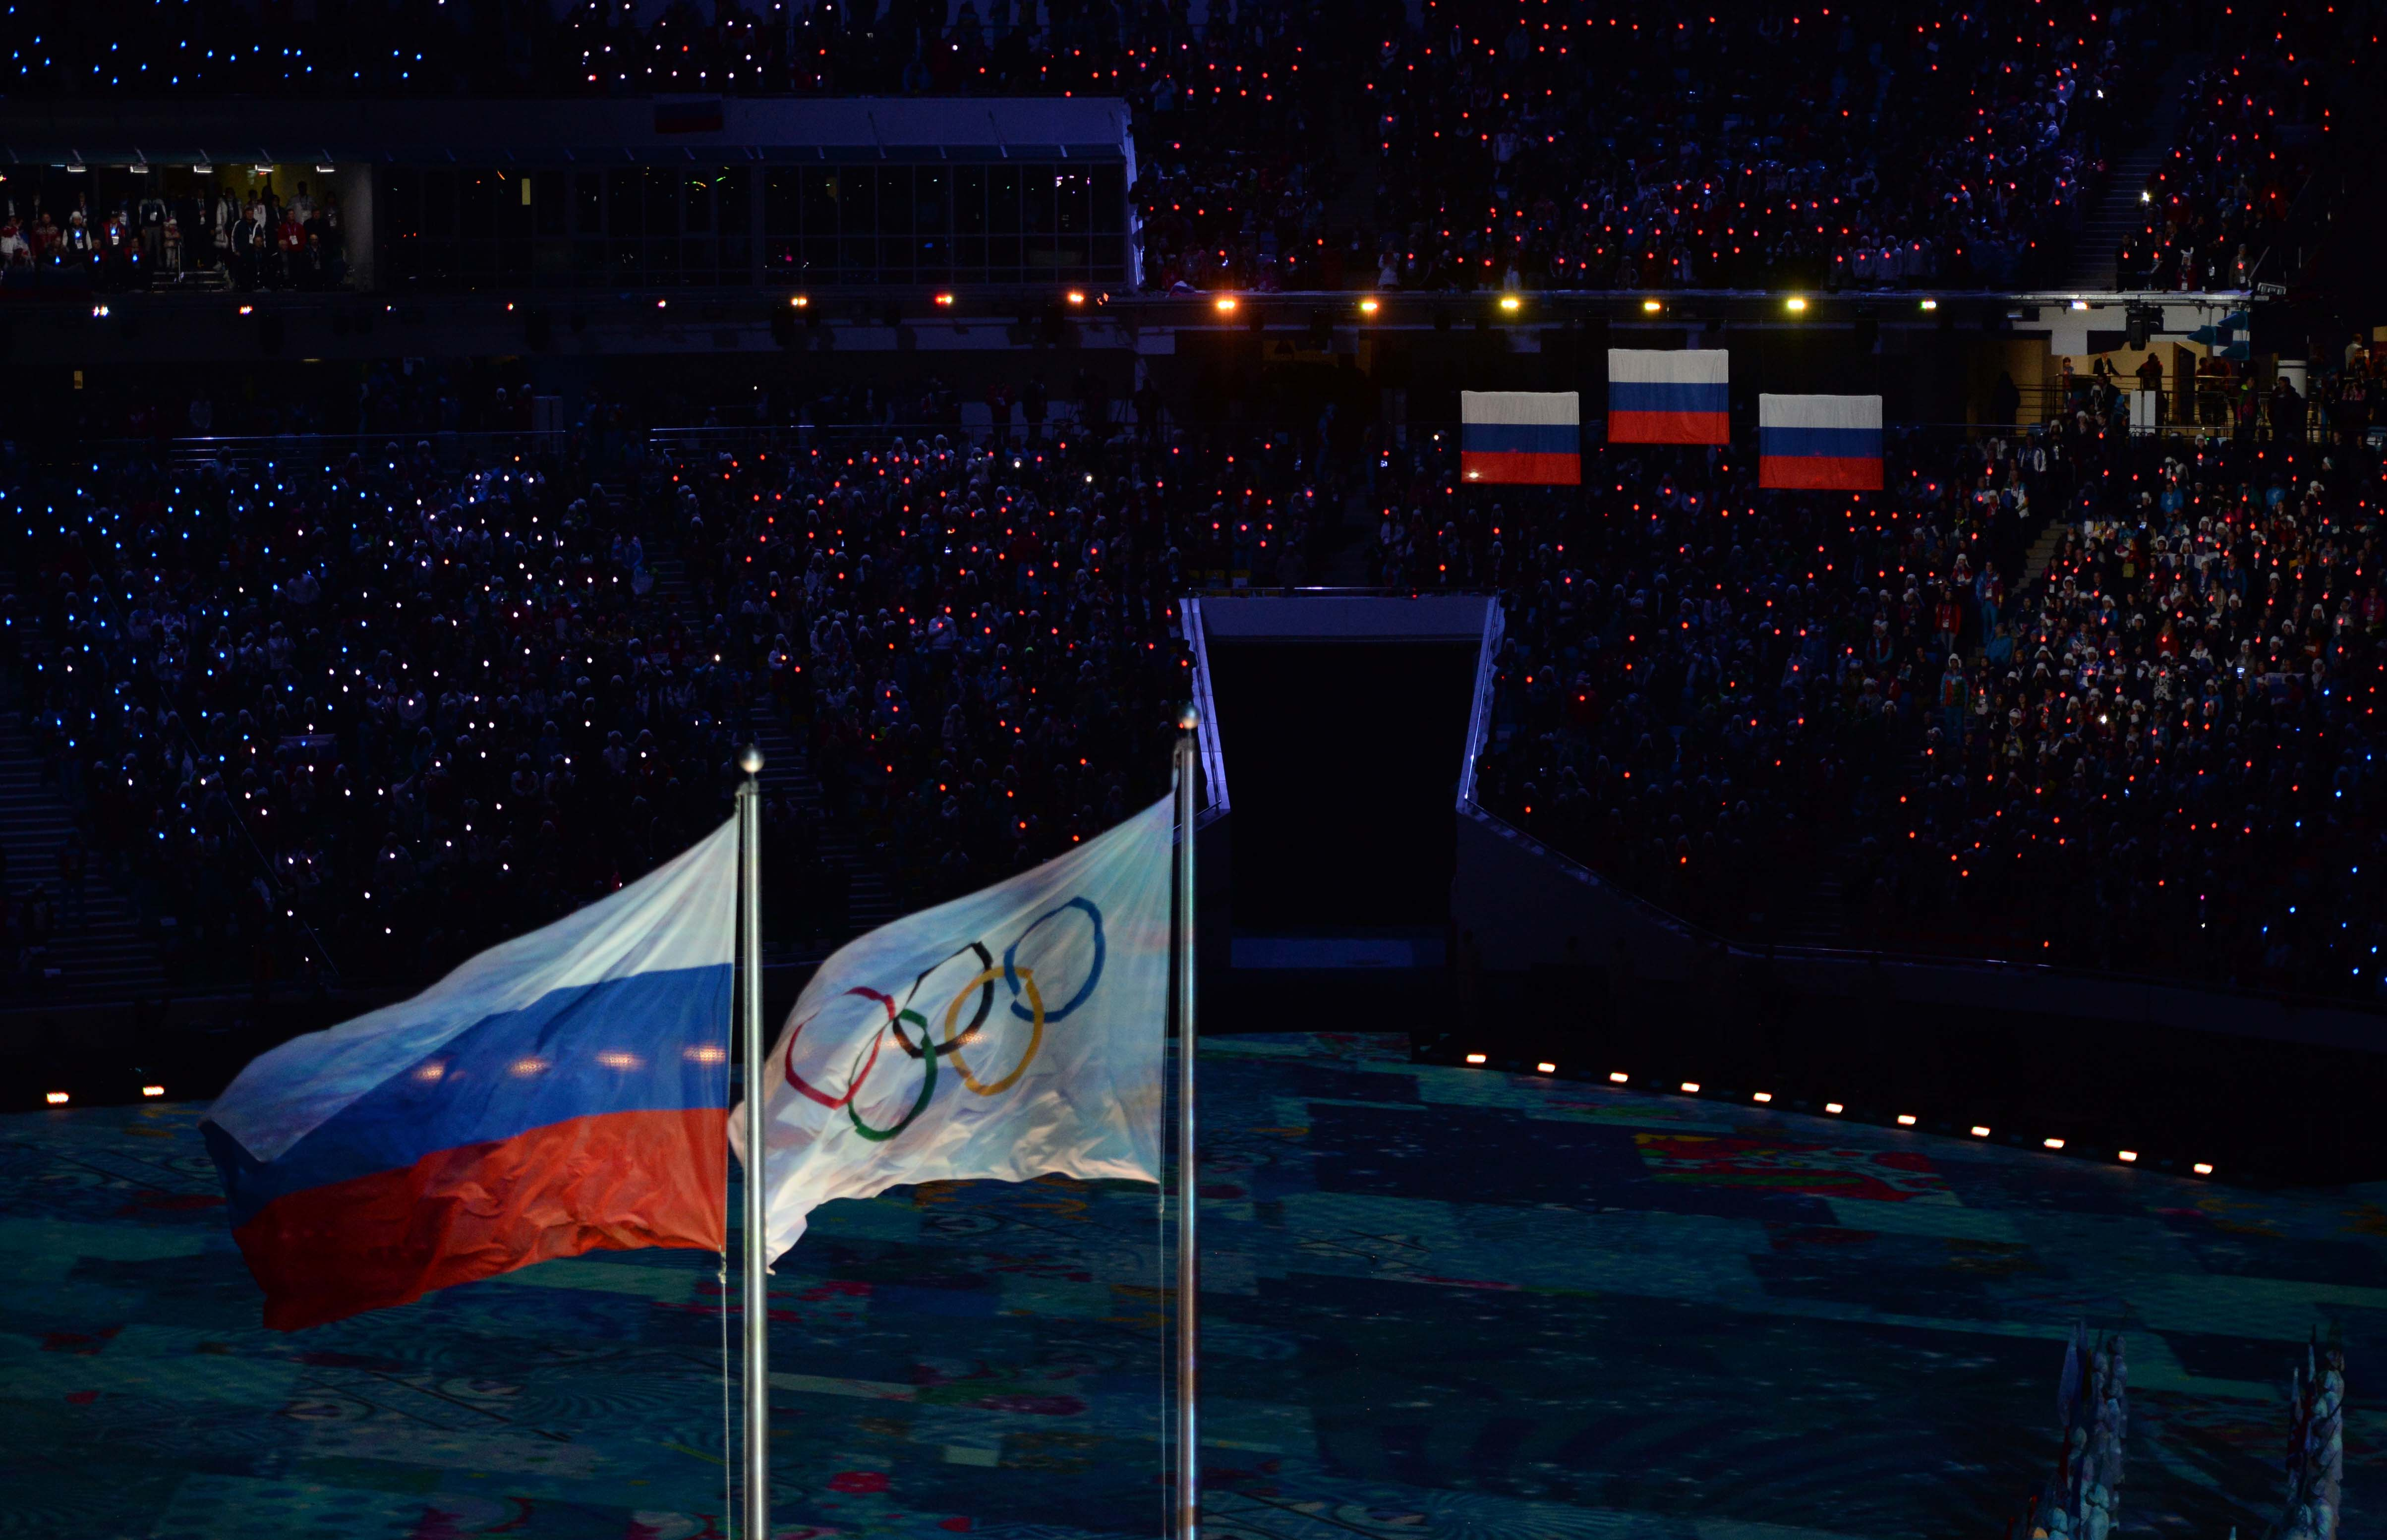 Anti-doping leaders call on IOC to ban Russia from Pyeongchang